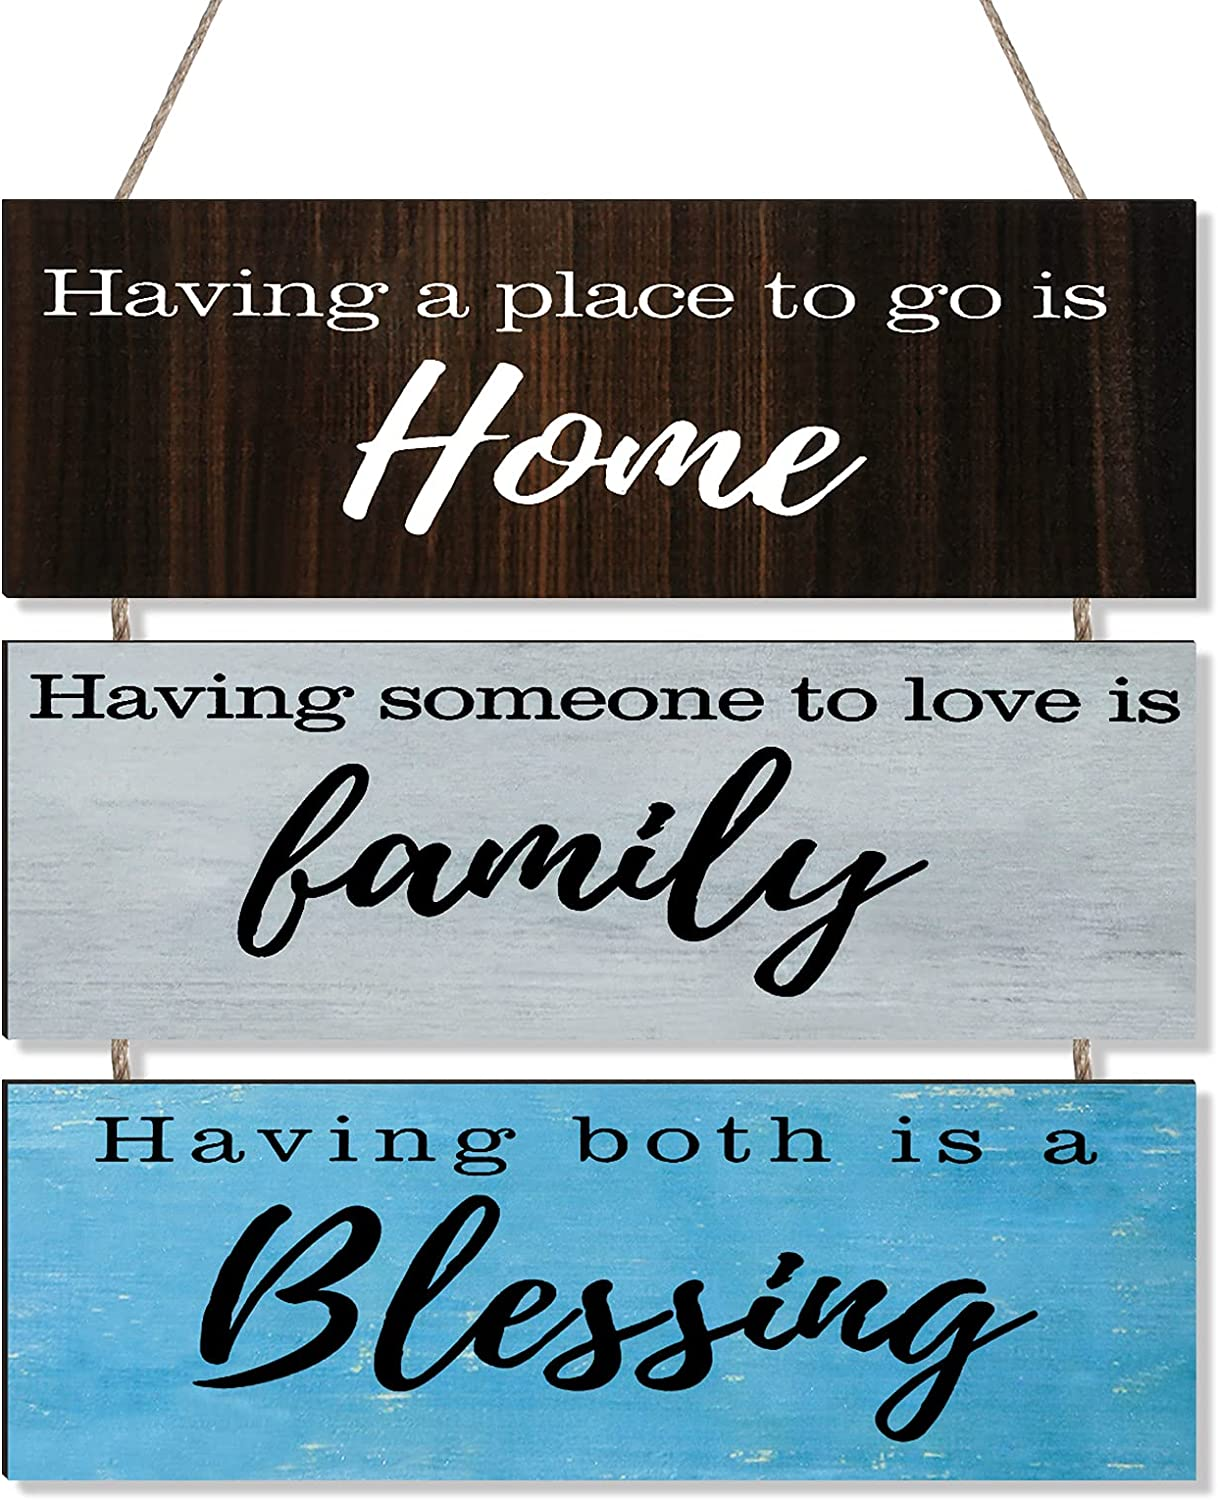 Jetec Having Someone to Love is Family, Having Somewhere to Go is Home, Having Both is A Blessing Rustic Wooden Family Sign Decor Hanging Wood Wall Decoration for Living Room Bedroom Outdoor